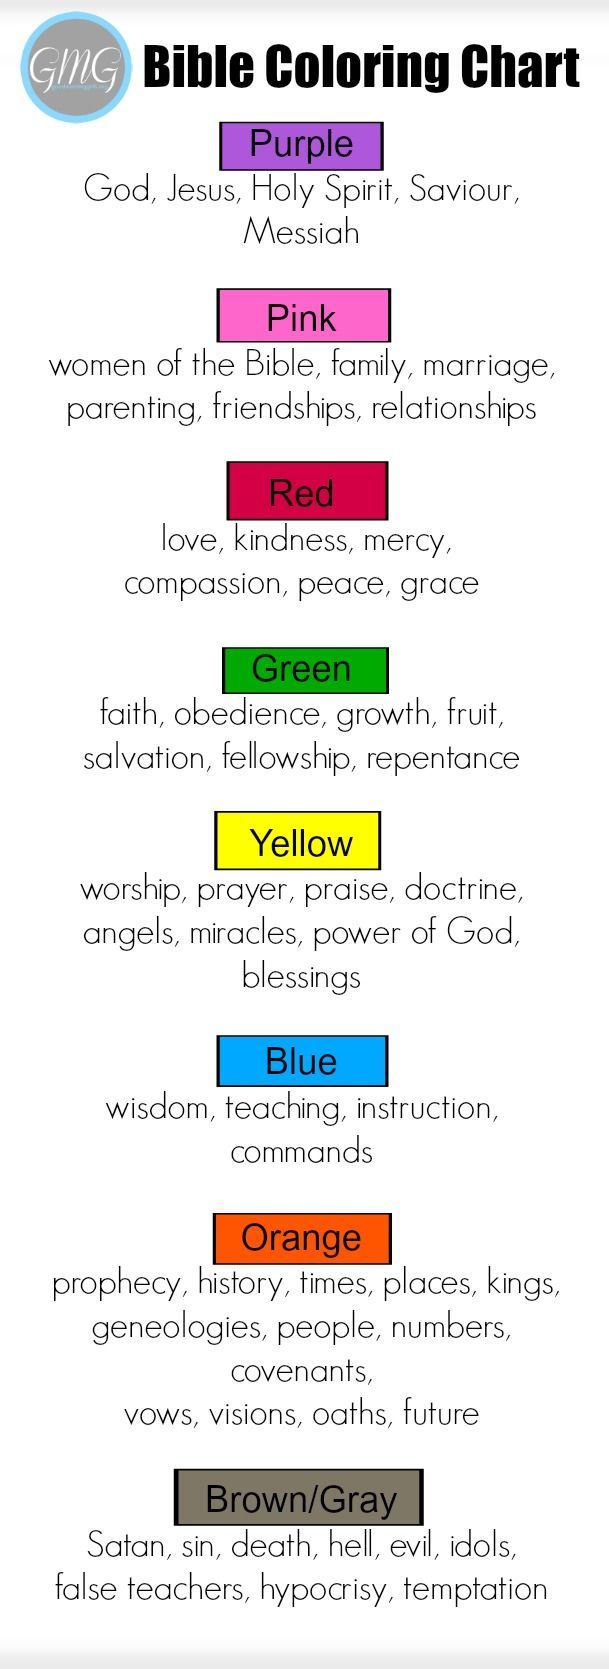 This Printable Bible Coloring Chart (in bookmark form) is available on this blog post along with all the other tools I LOVE to use to study God's Word. Have you tried using this yet? I love it (and so do my kids! Yay!)